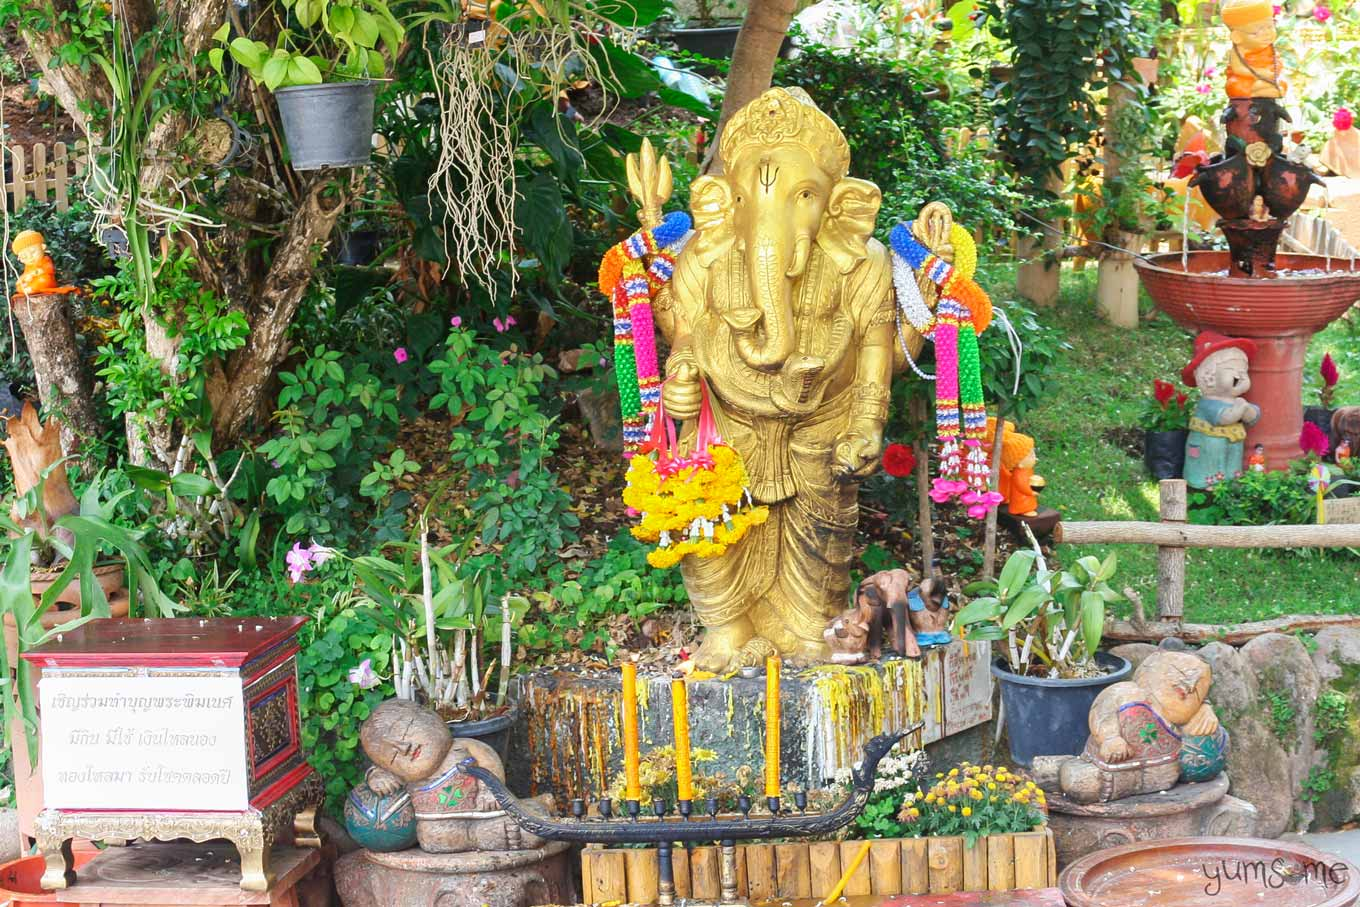 A shrine and offerings dedicated to the Hindu god, Ganesha.